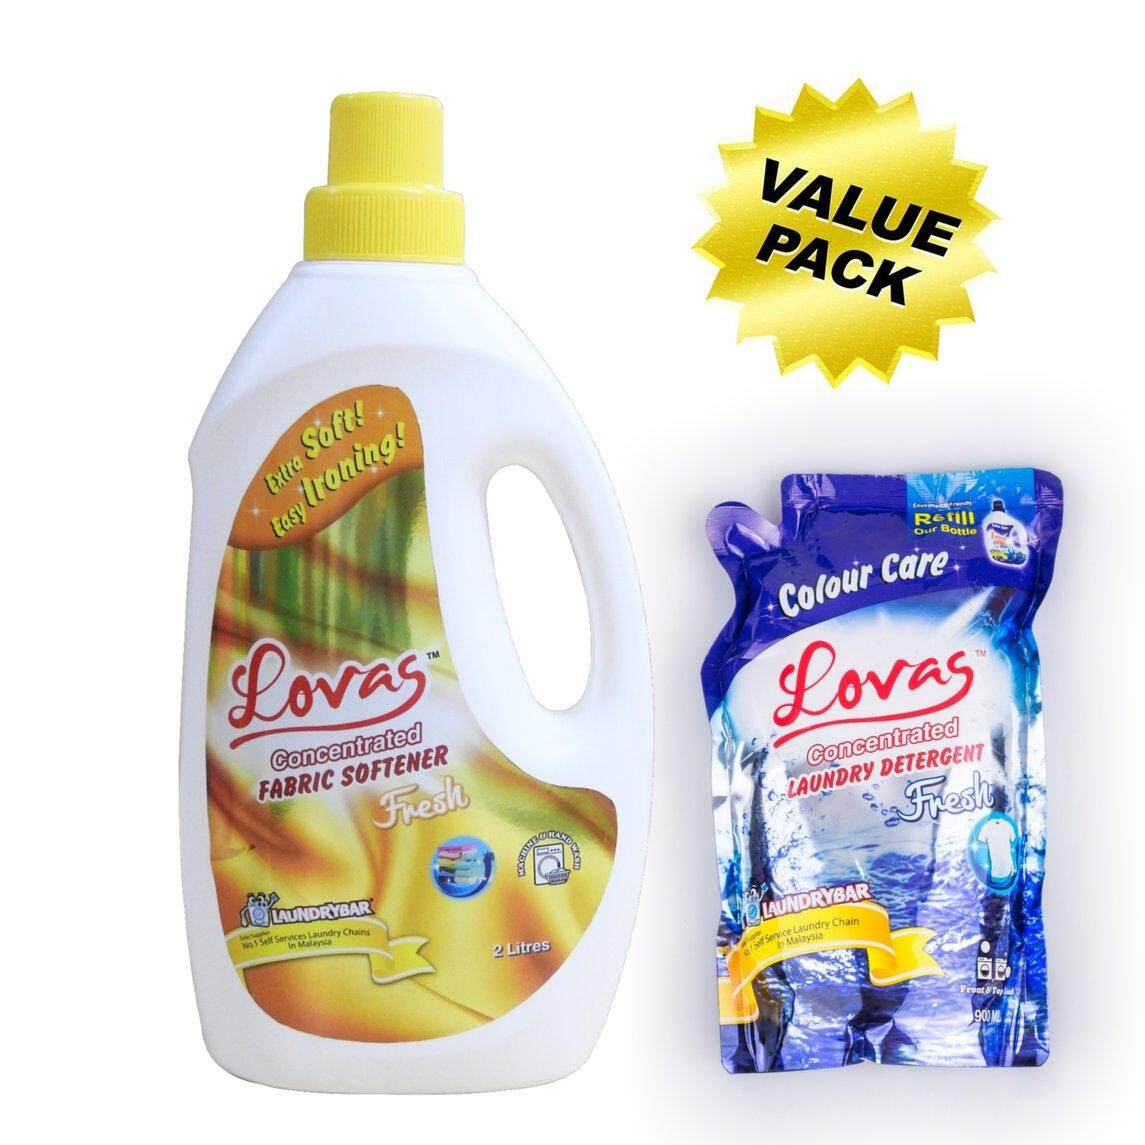 VALUE Pack - LOVAS Concentrated Fabric Softener - 2L [Fresh] + LOVAS Concentrated Laundry Detergent 900ml Refill Pack